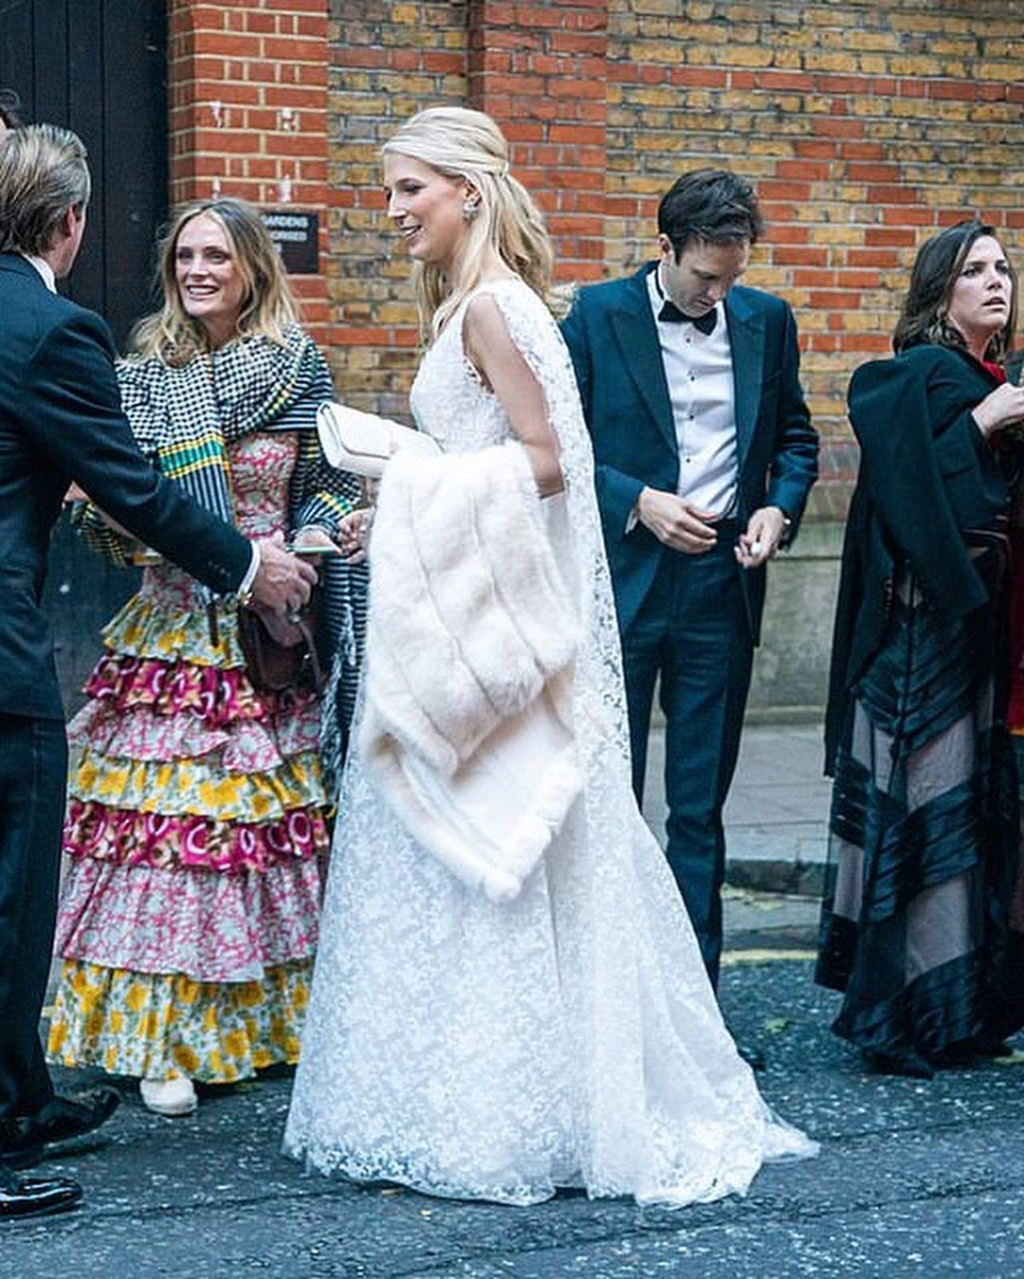 BODA DE LADY GABRIELLA WINDSOR Y THOMAS KINGSTON. EL 18/05 - Página 6 Foto6117